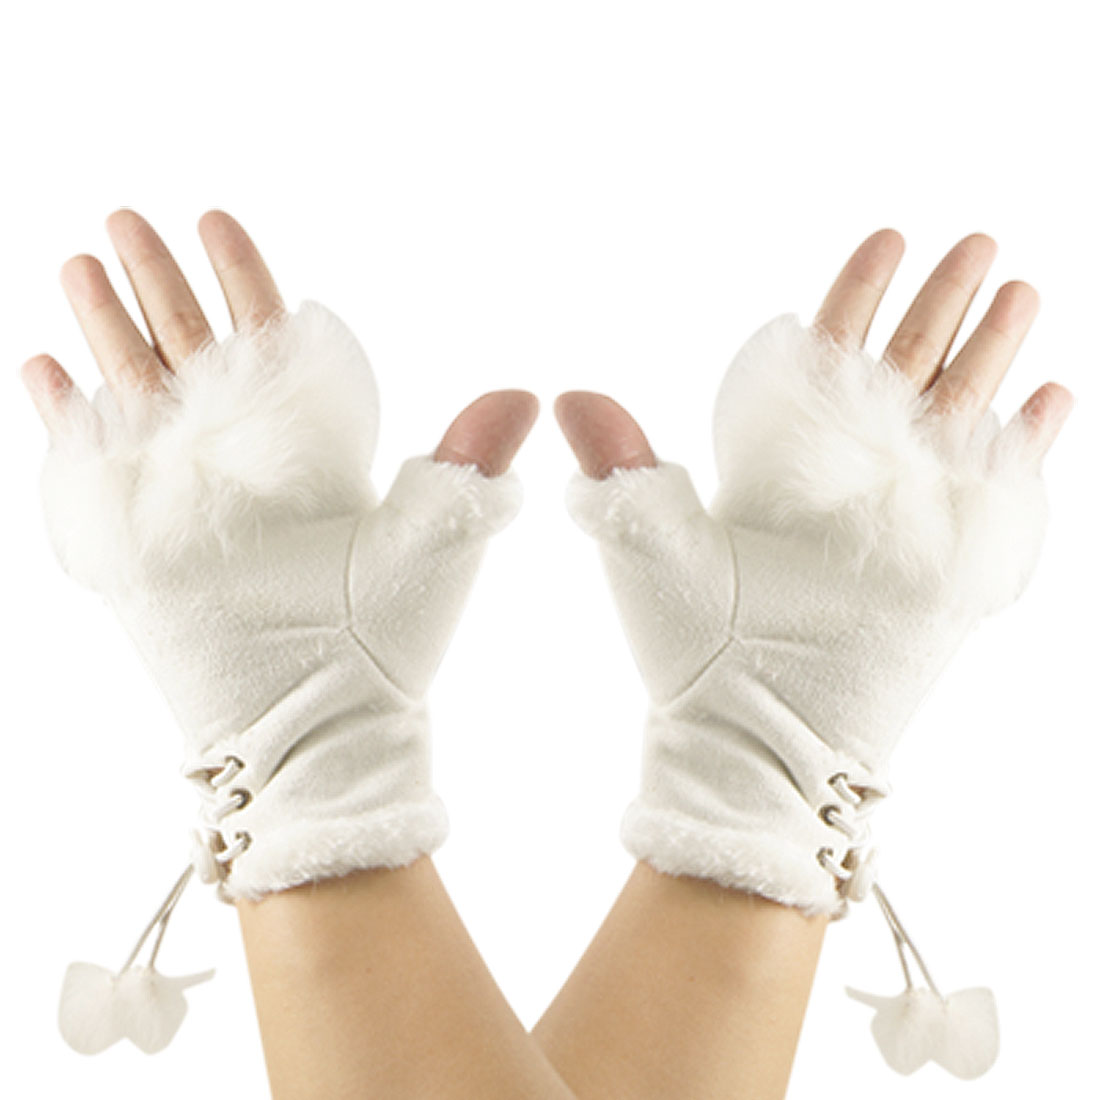 Girl's Pair Winter Warm Faux Suede Fingerless Gloves Gift White